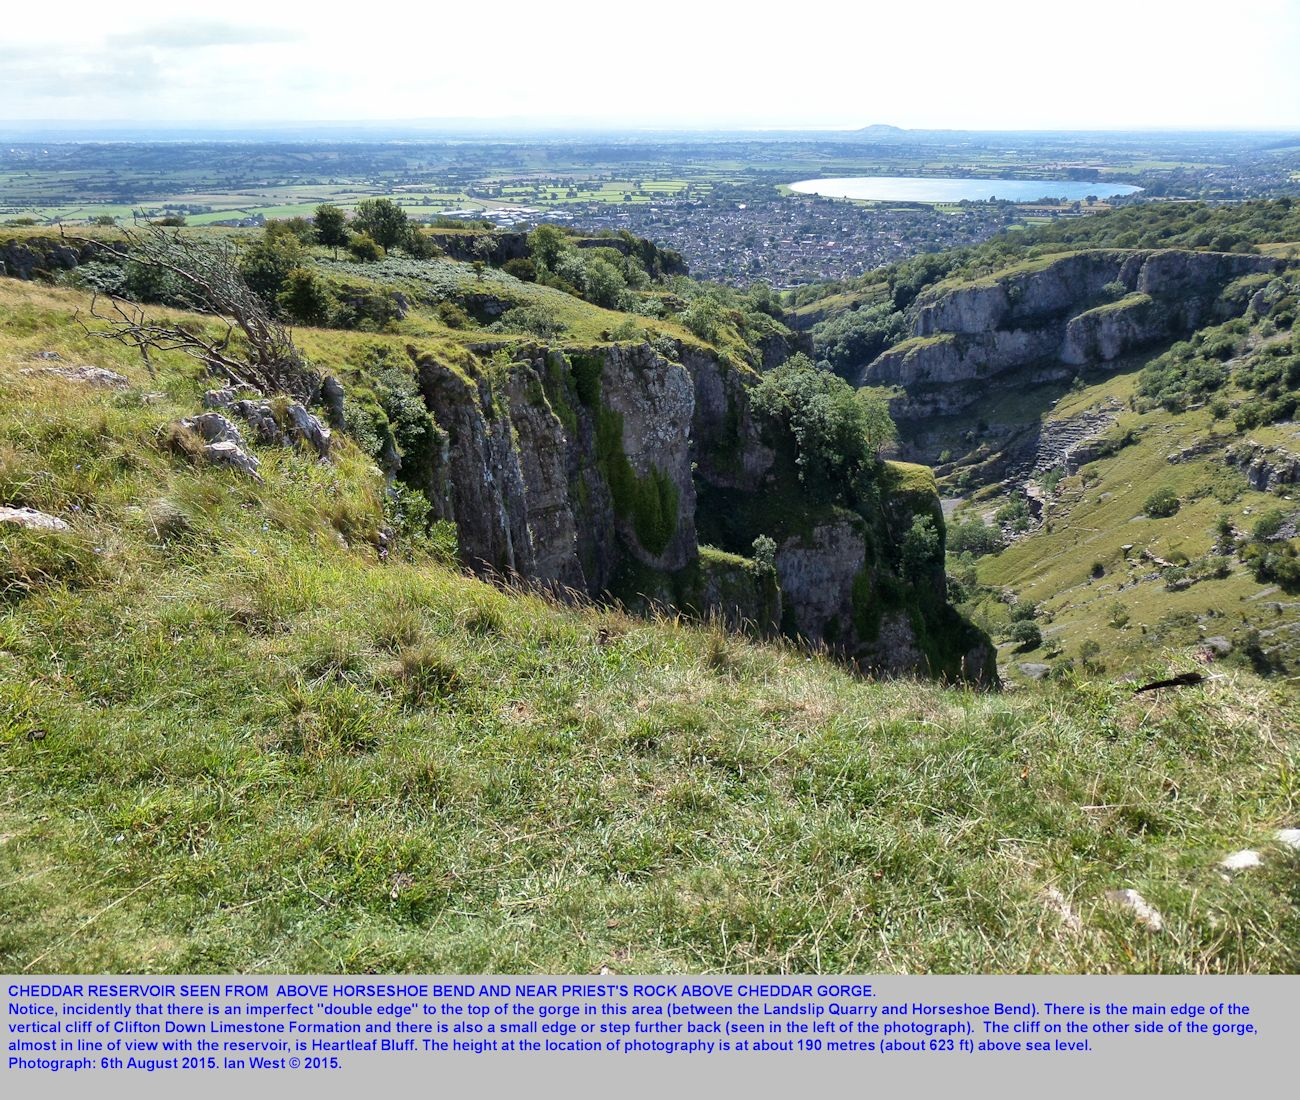 At the cliff top, above Horseshoe Bend, Cheddar Gorge, Mendip Hills, Somerset, with a view of Cheddar Reservoir in the distance